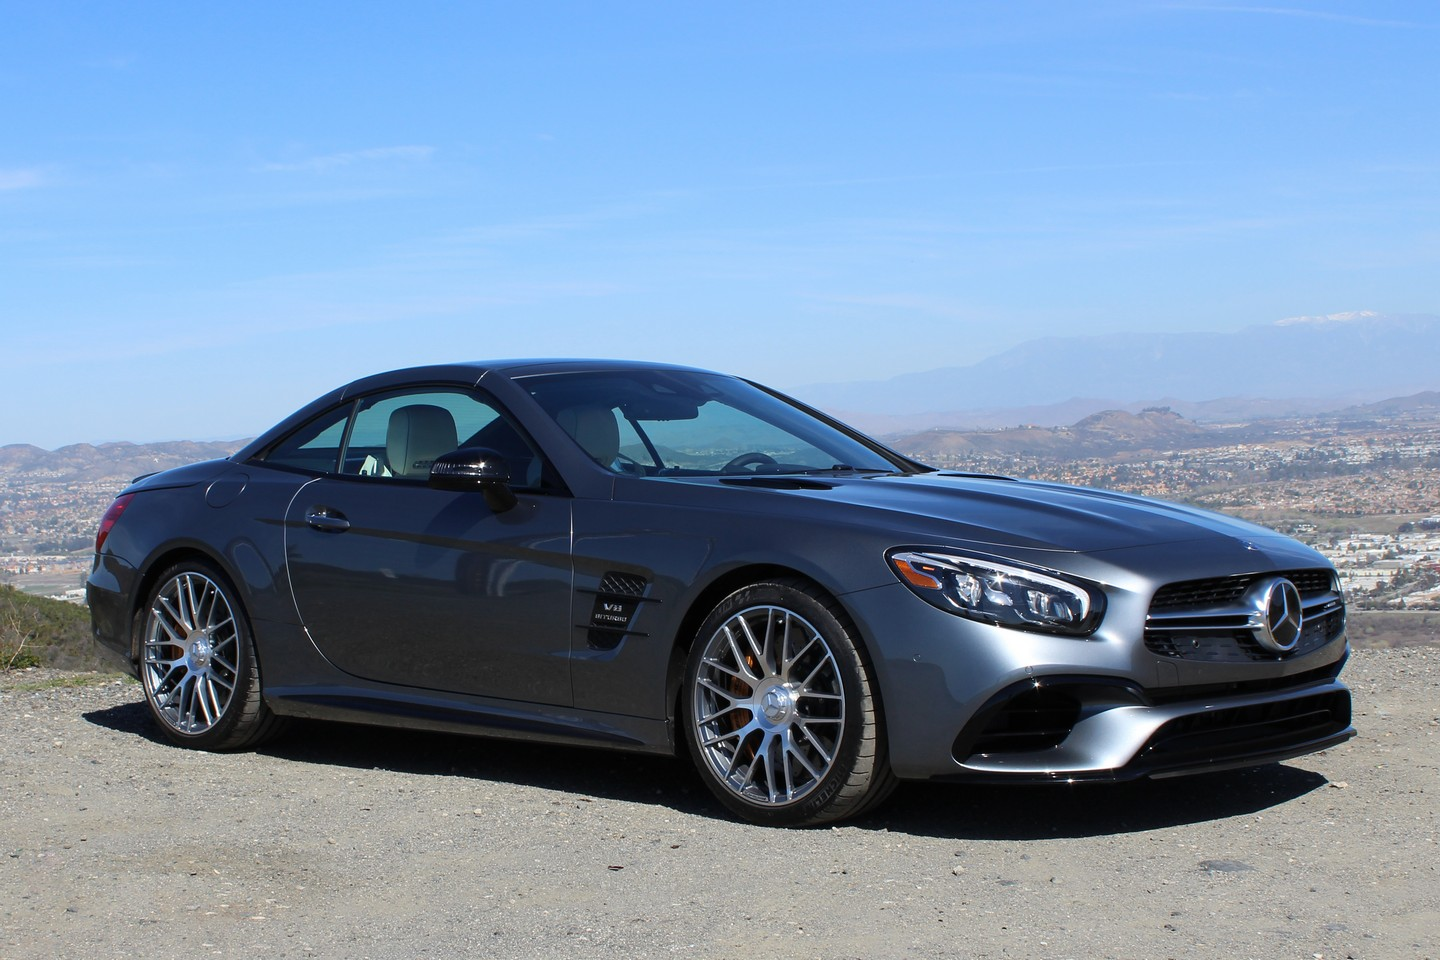 Mercedes benz sl63 amg photos photogallery with 53 pics for Mercedes benz amg sl63